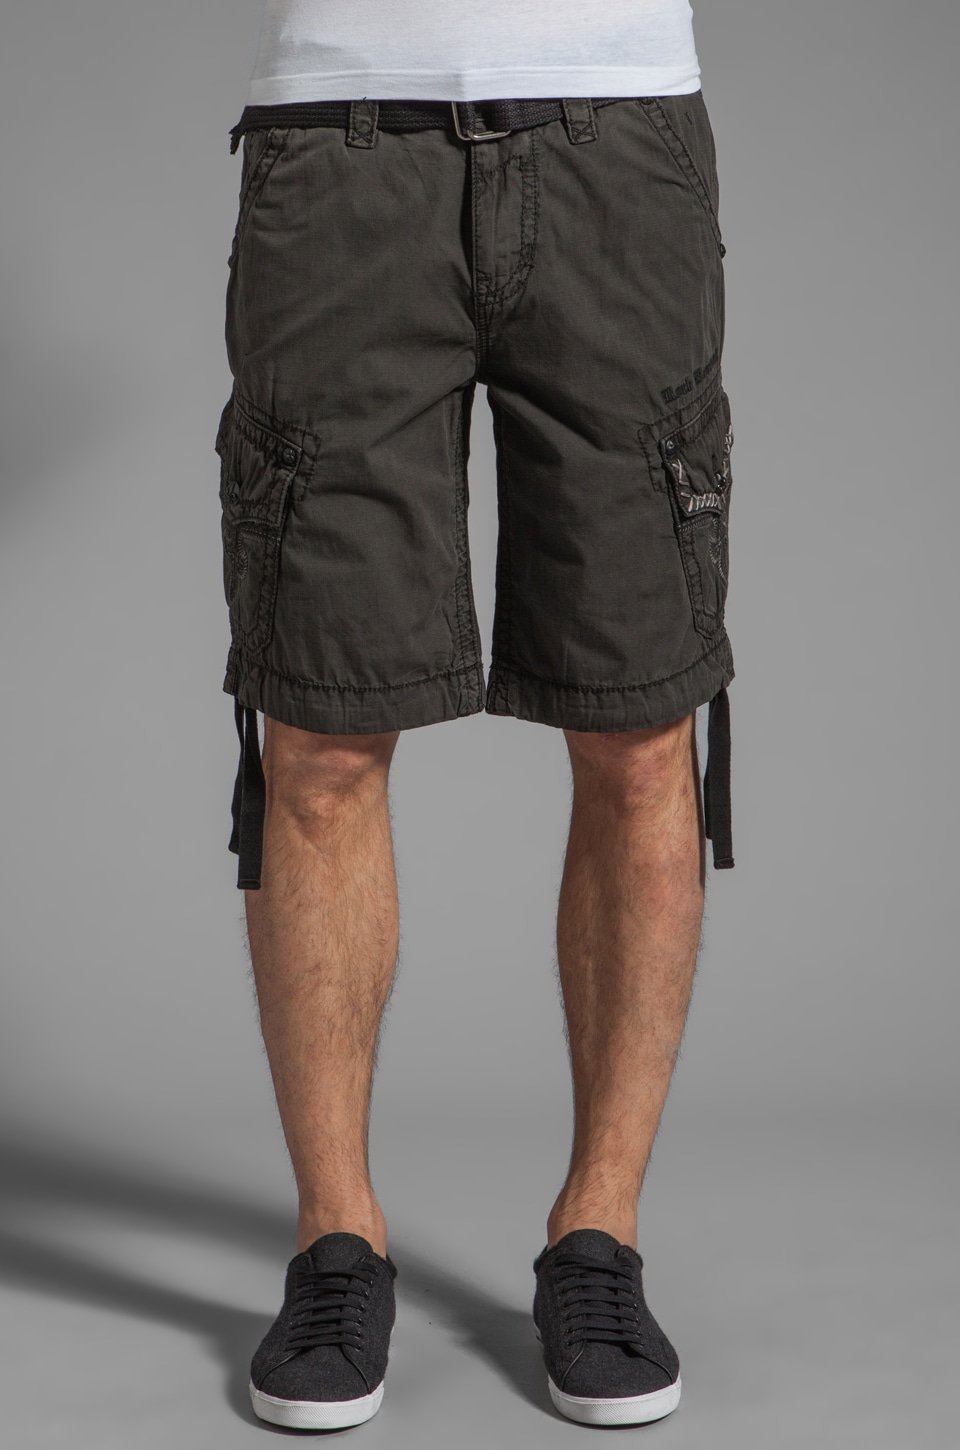 Rock Revival Cargo Short in Graphite